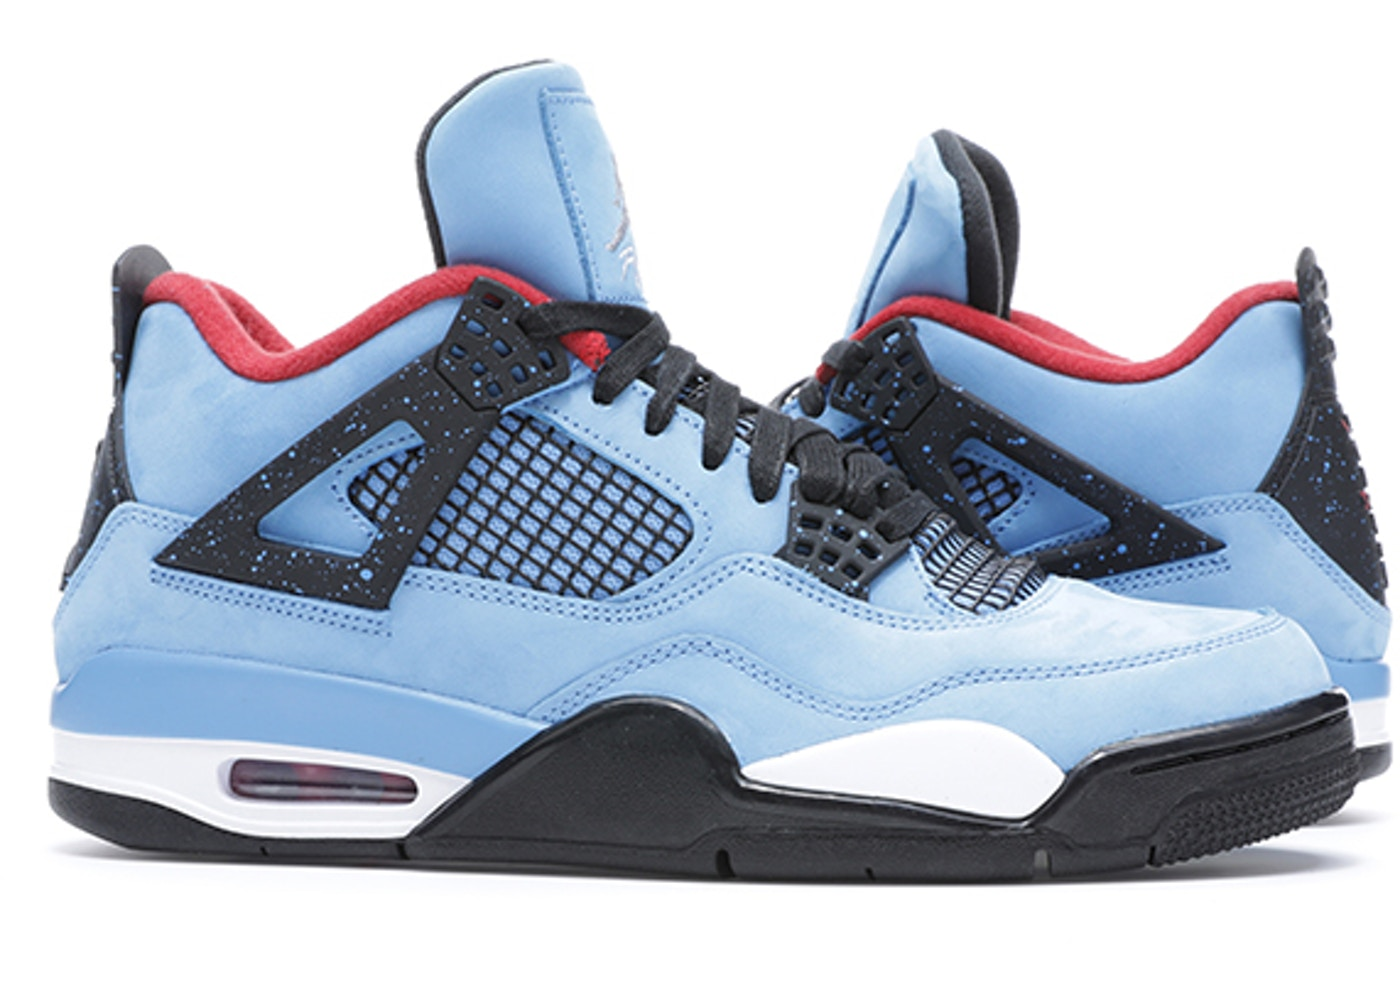 d74f849e9267 Jordan 4 Retro Travis Scott Cactus Jack. Home · sneakers · Air Jordan ...